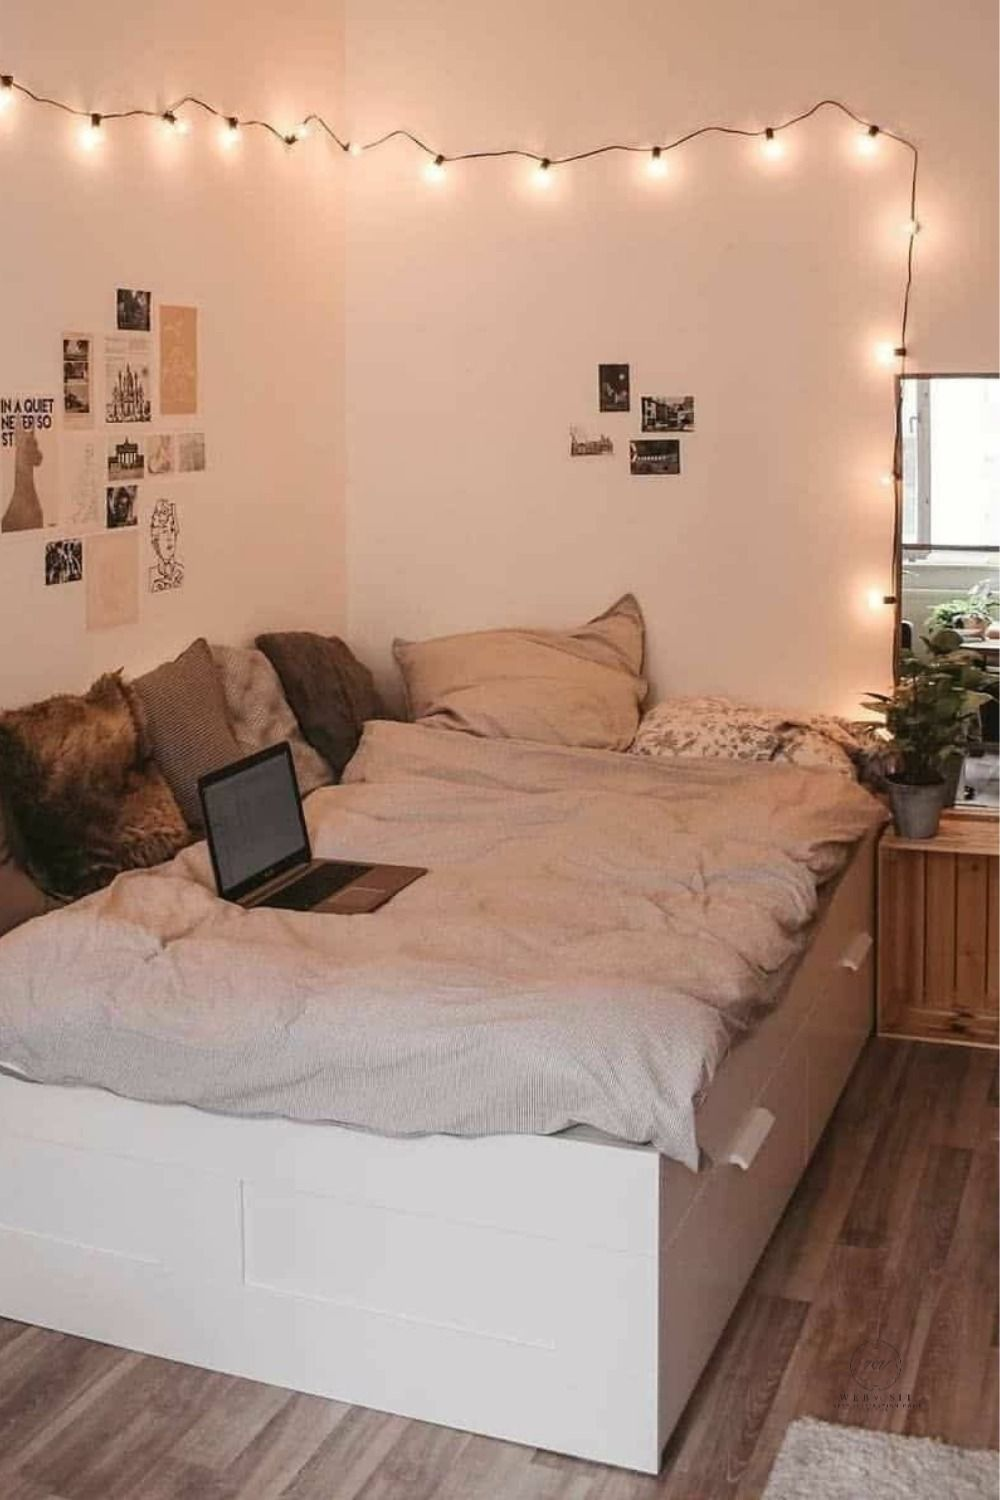 Amazing decoration ideas for small bedroom in 2020 ...